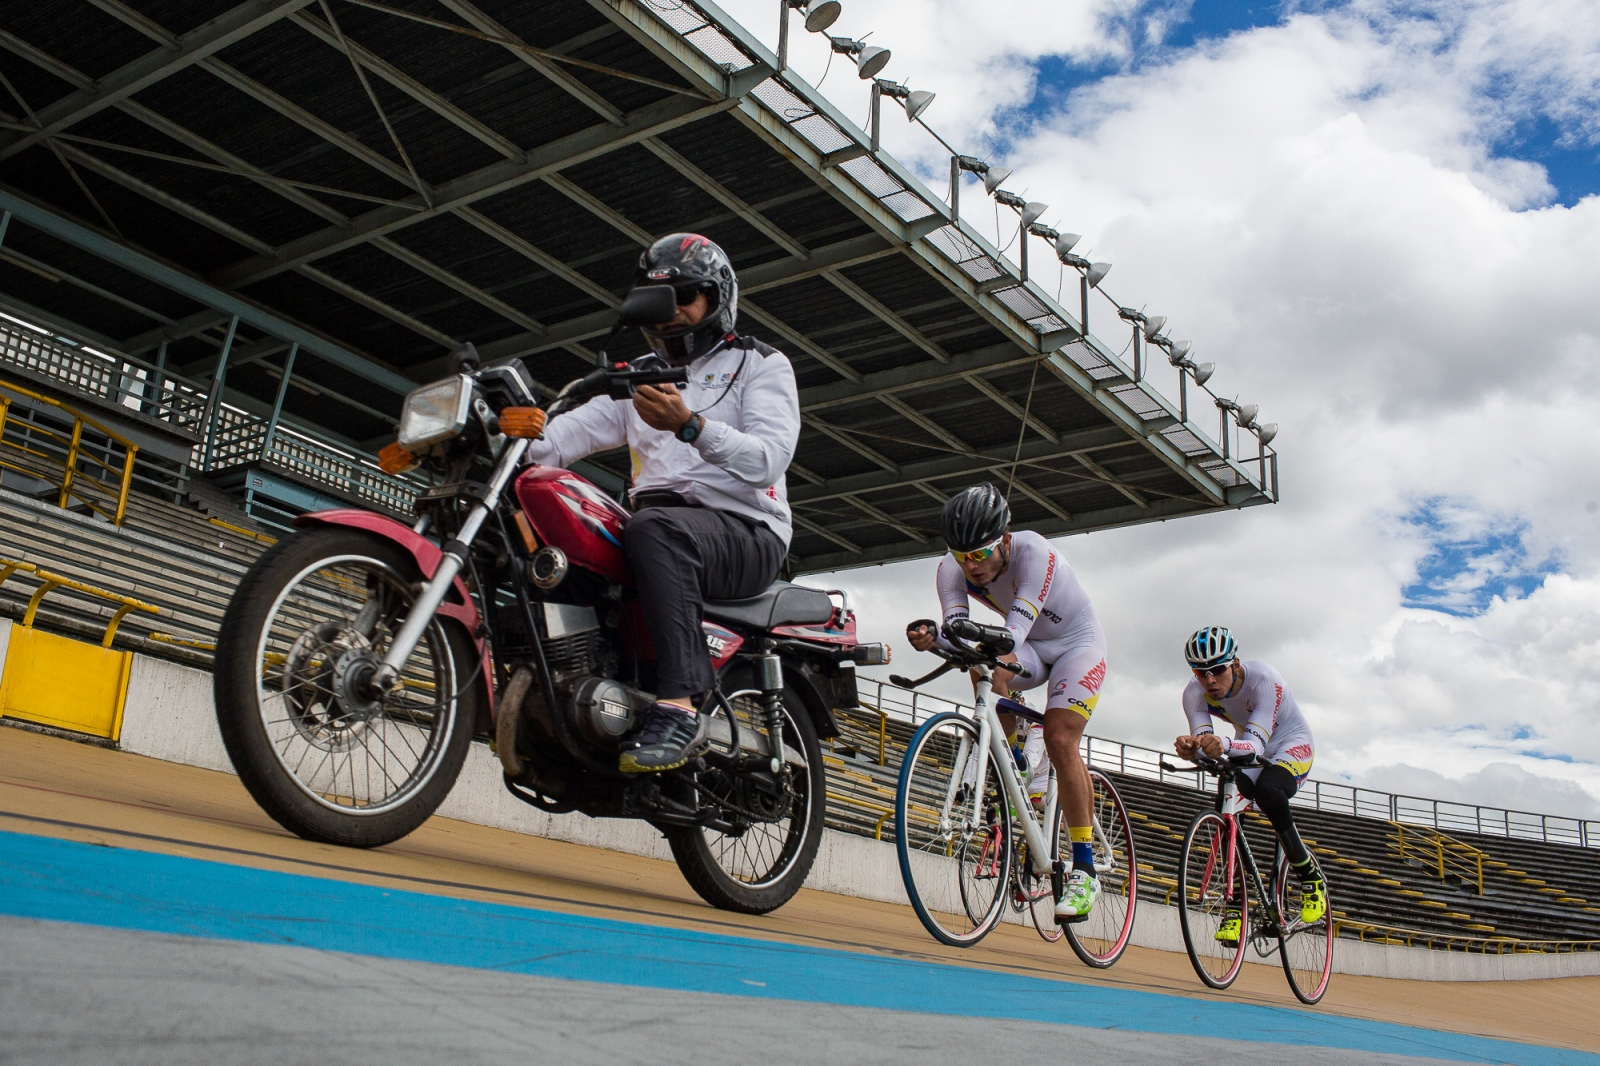 Edwin Matiz, 23, in the middle, chances a motorbike during one of his training sessions at Salitre Sports Complex, Bogotá, 8th June, 2016. Paralympics Cyclists chase the motorbike in order to improve their times on the racetrack.